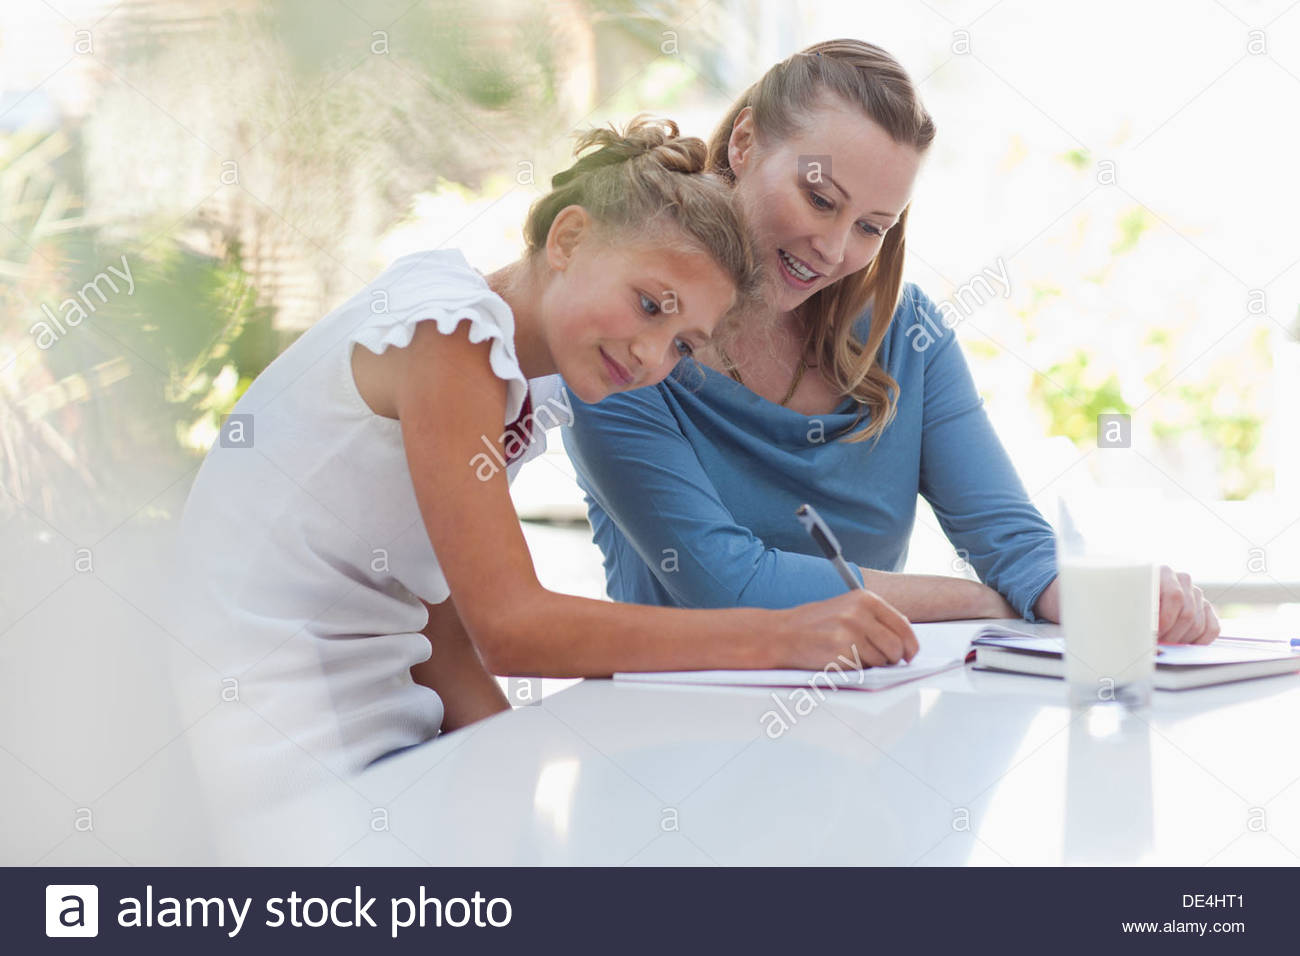 Mother and daughter working on homework together - Stock Image